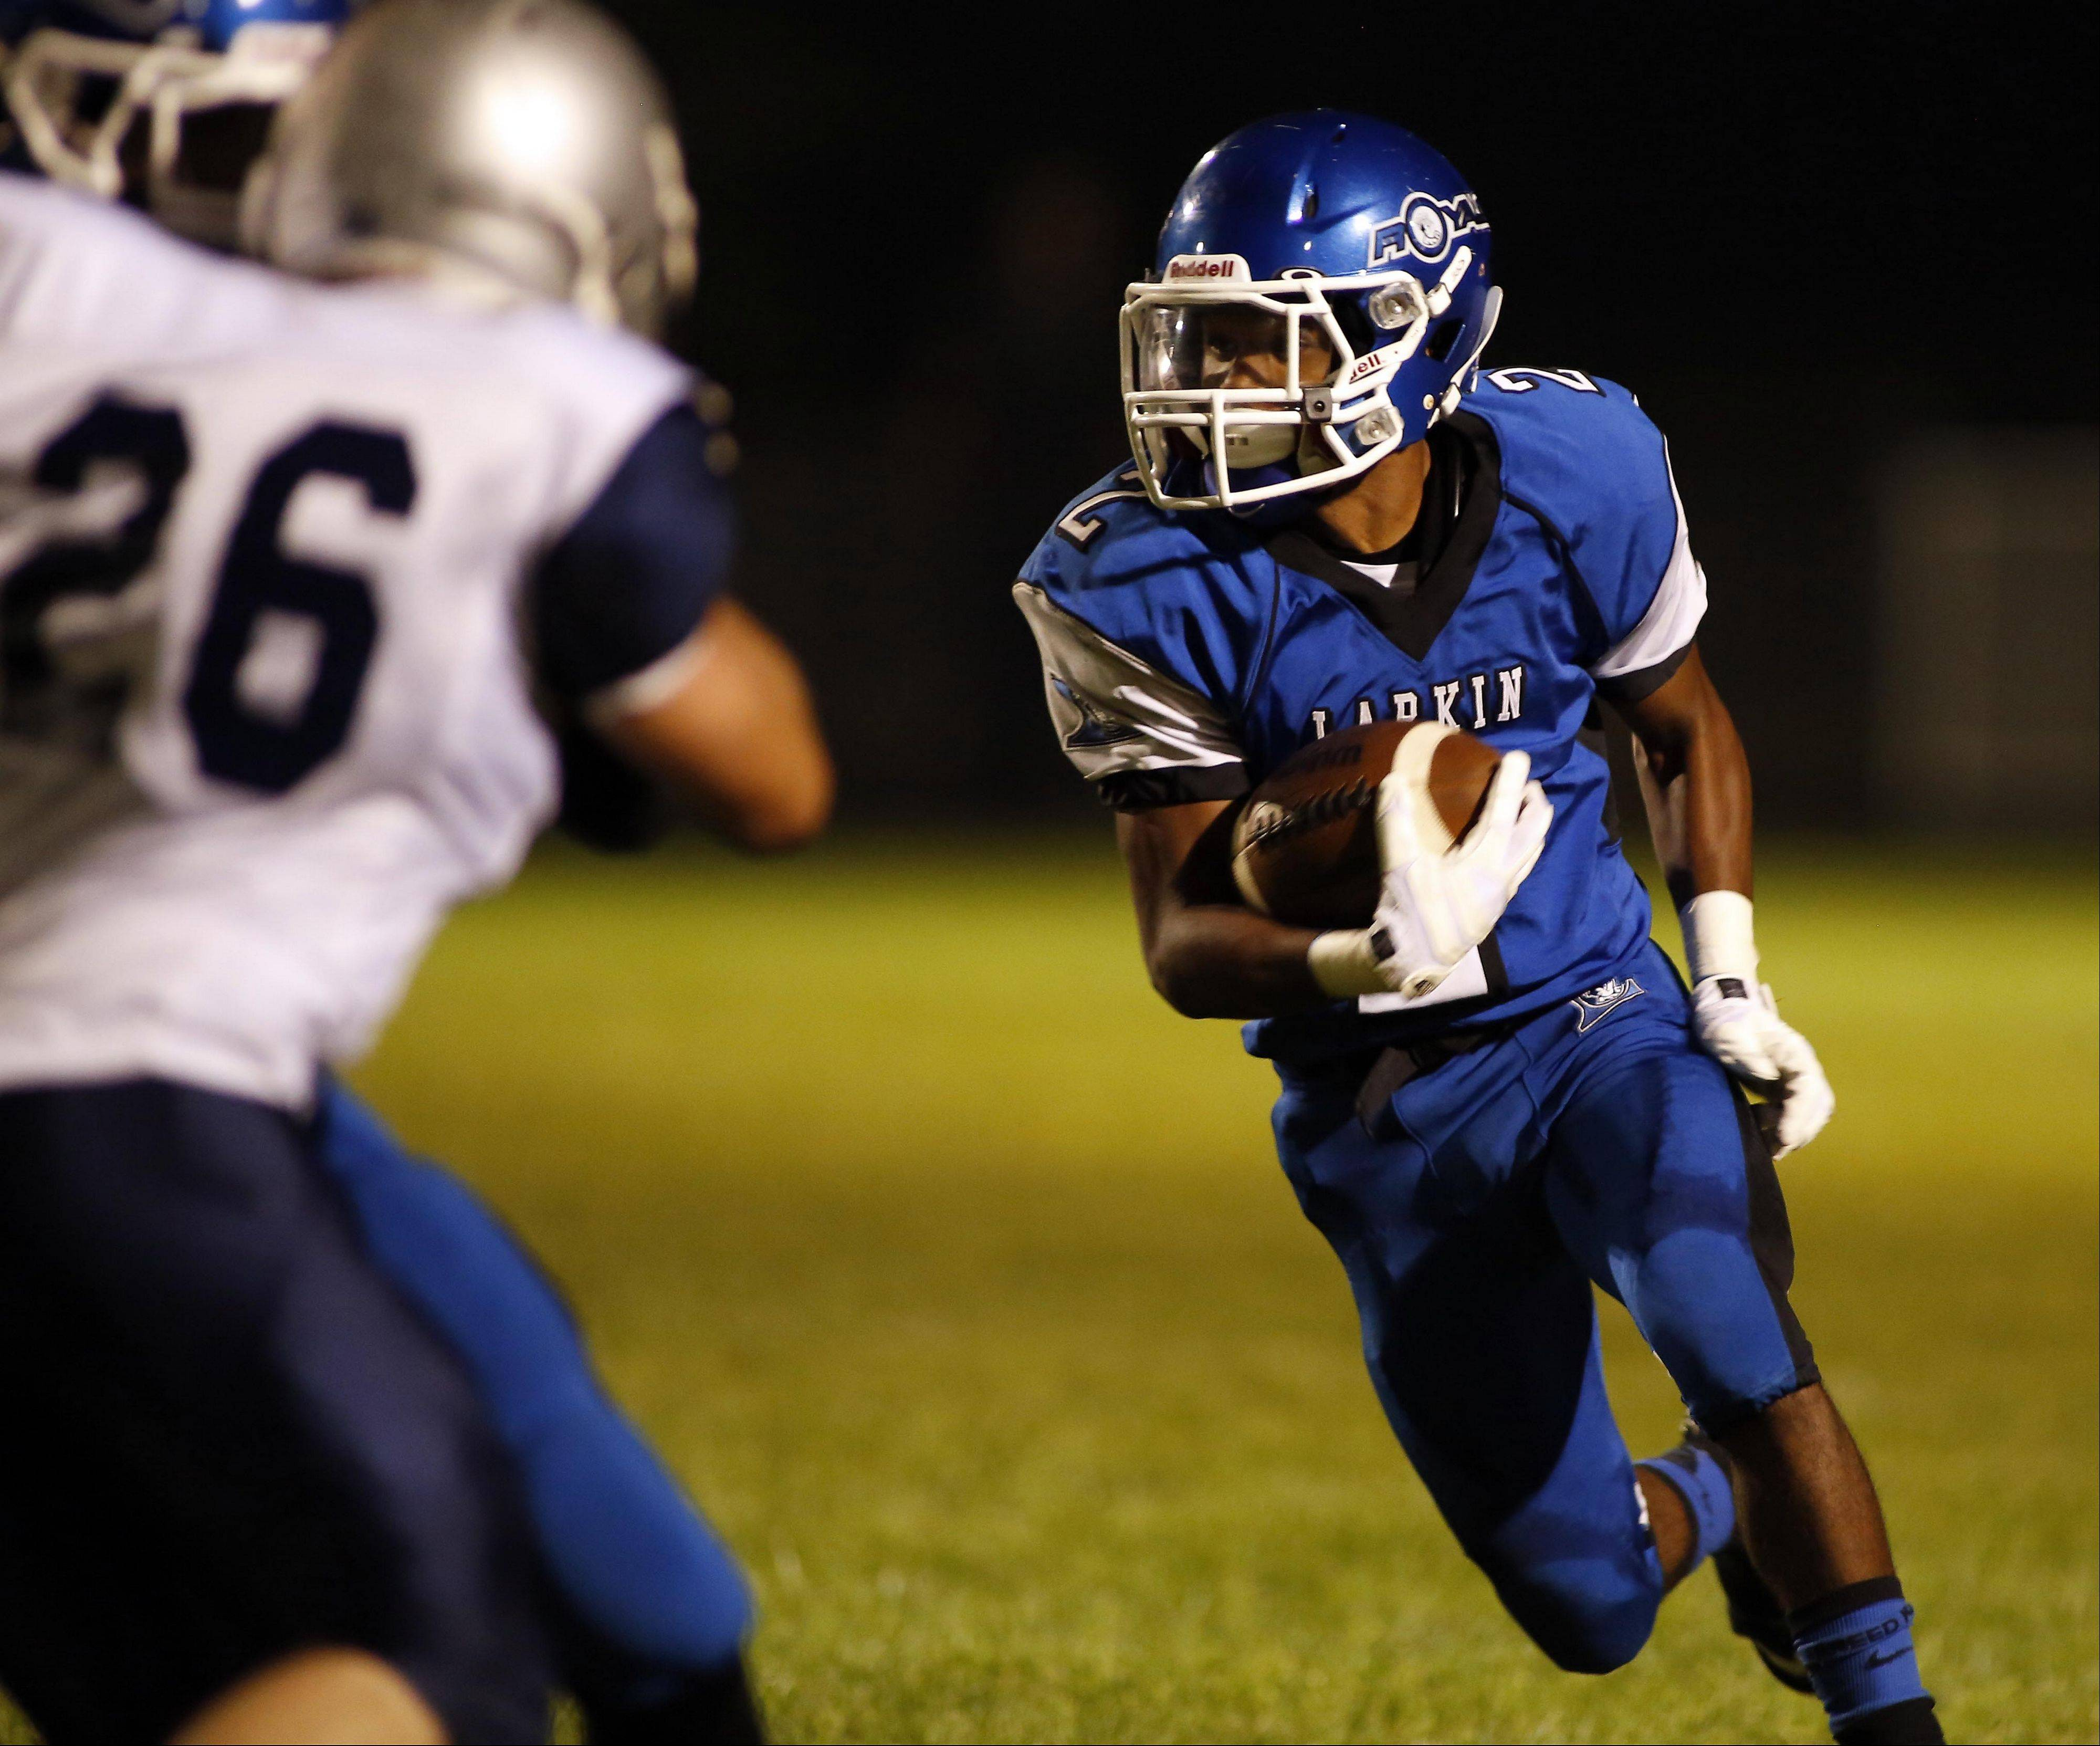 Larkin's Damion Clemons looks to gain yardage Friday night against West Chicago at Memorial Field. Clemons' 2-yard run in overtime lifted the Royals to a 20-12 win.